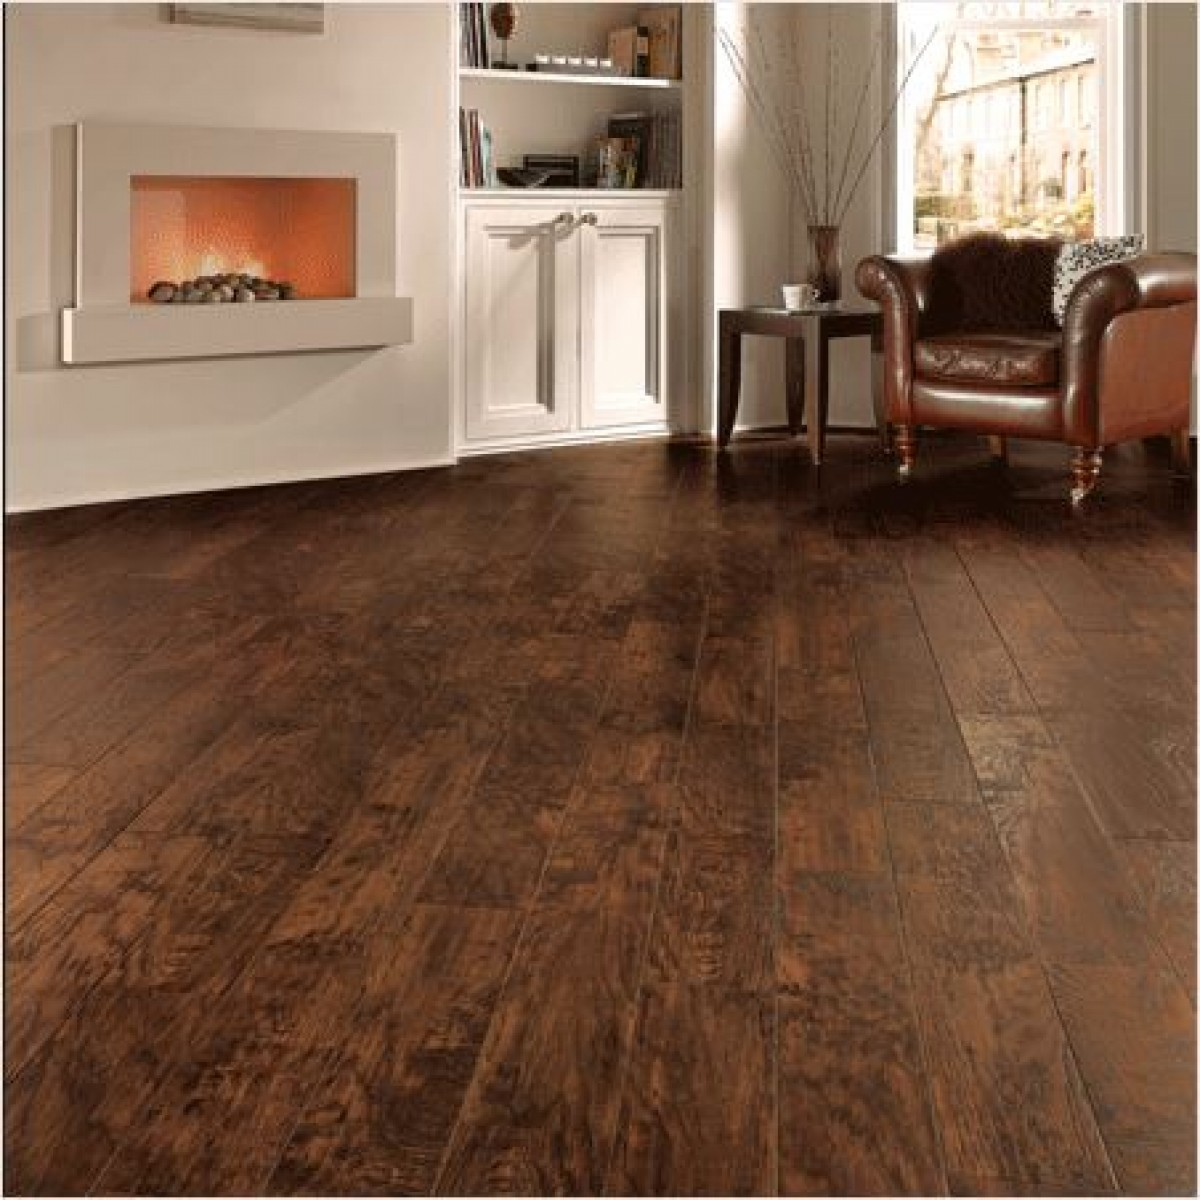 Karndean Art Select Ew02 Hickory Peppercorn Vinyl Flooring